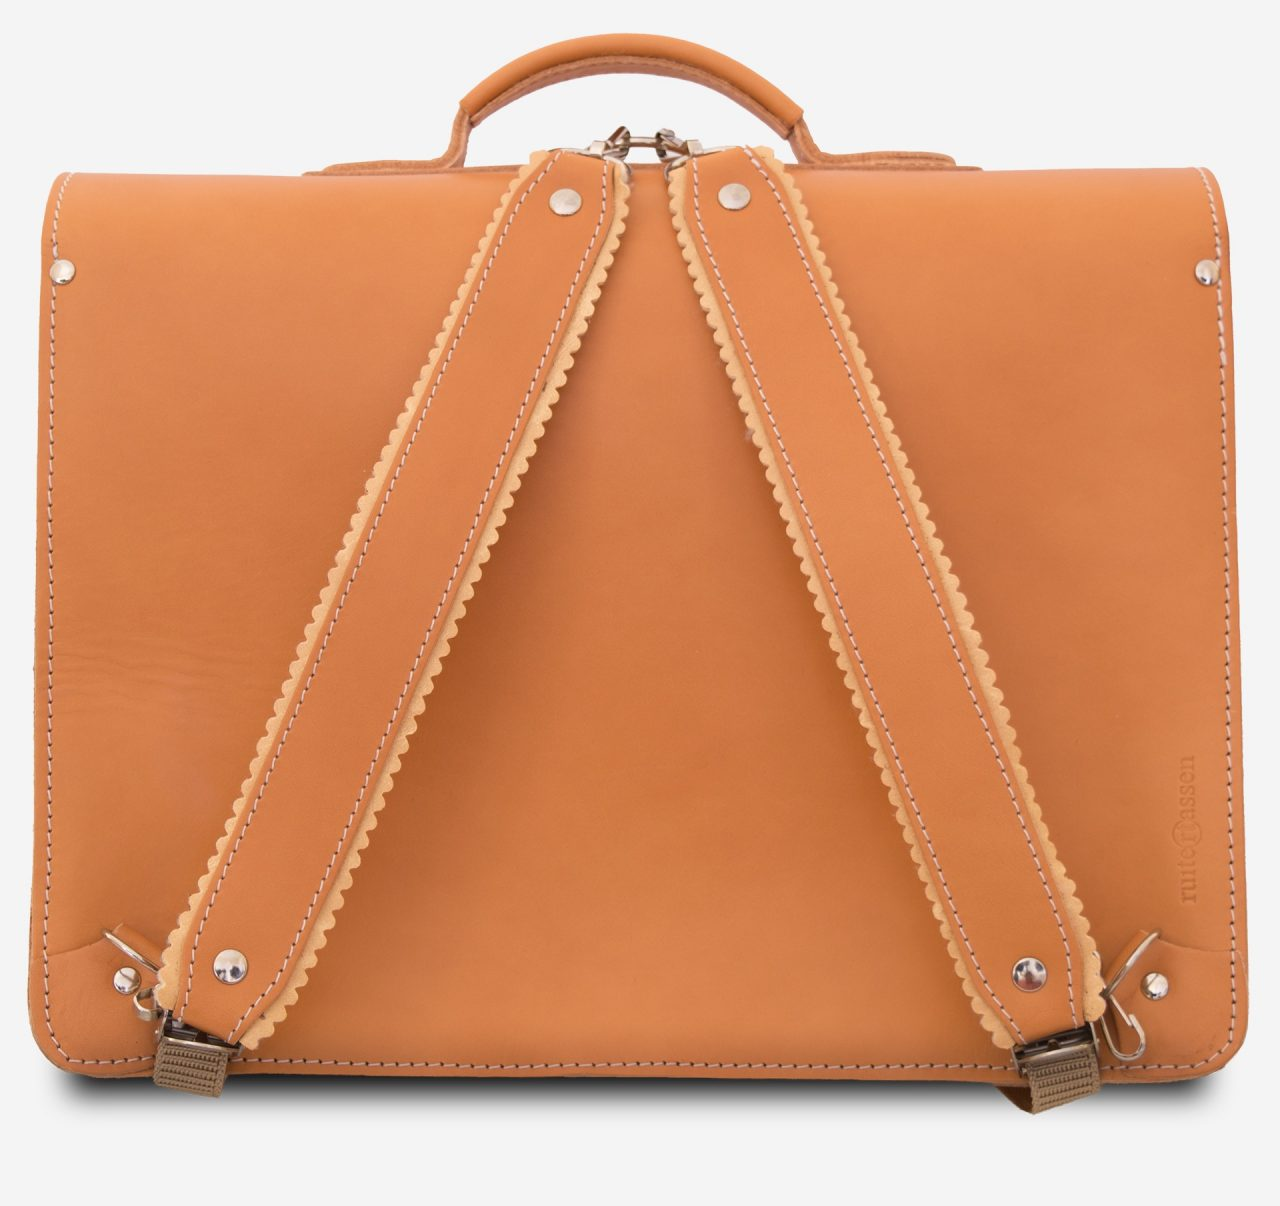 Back view of tan leather satchel backpack fitted with shoulder straps.